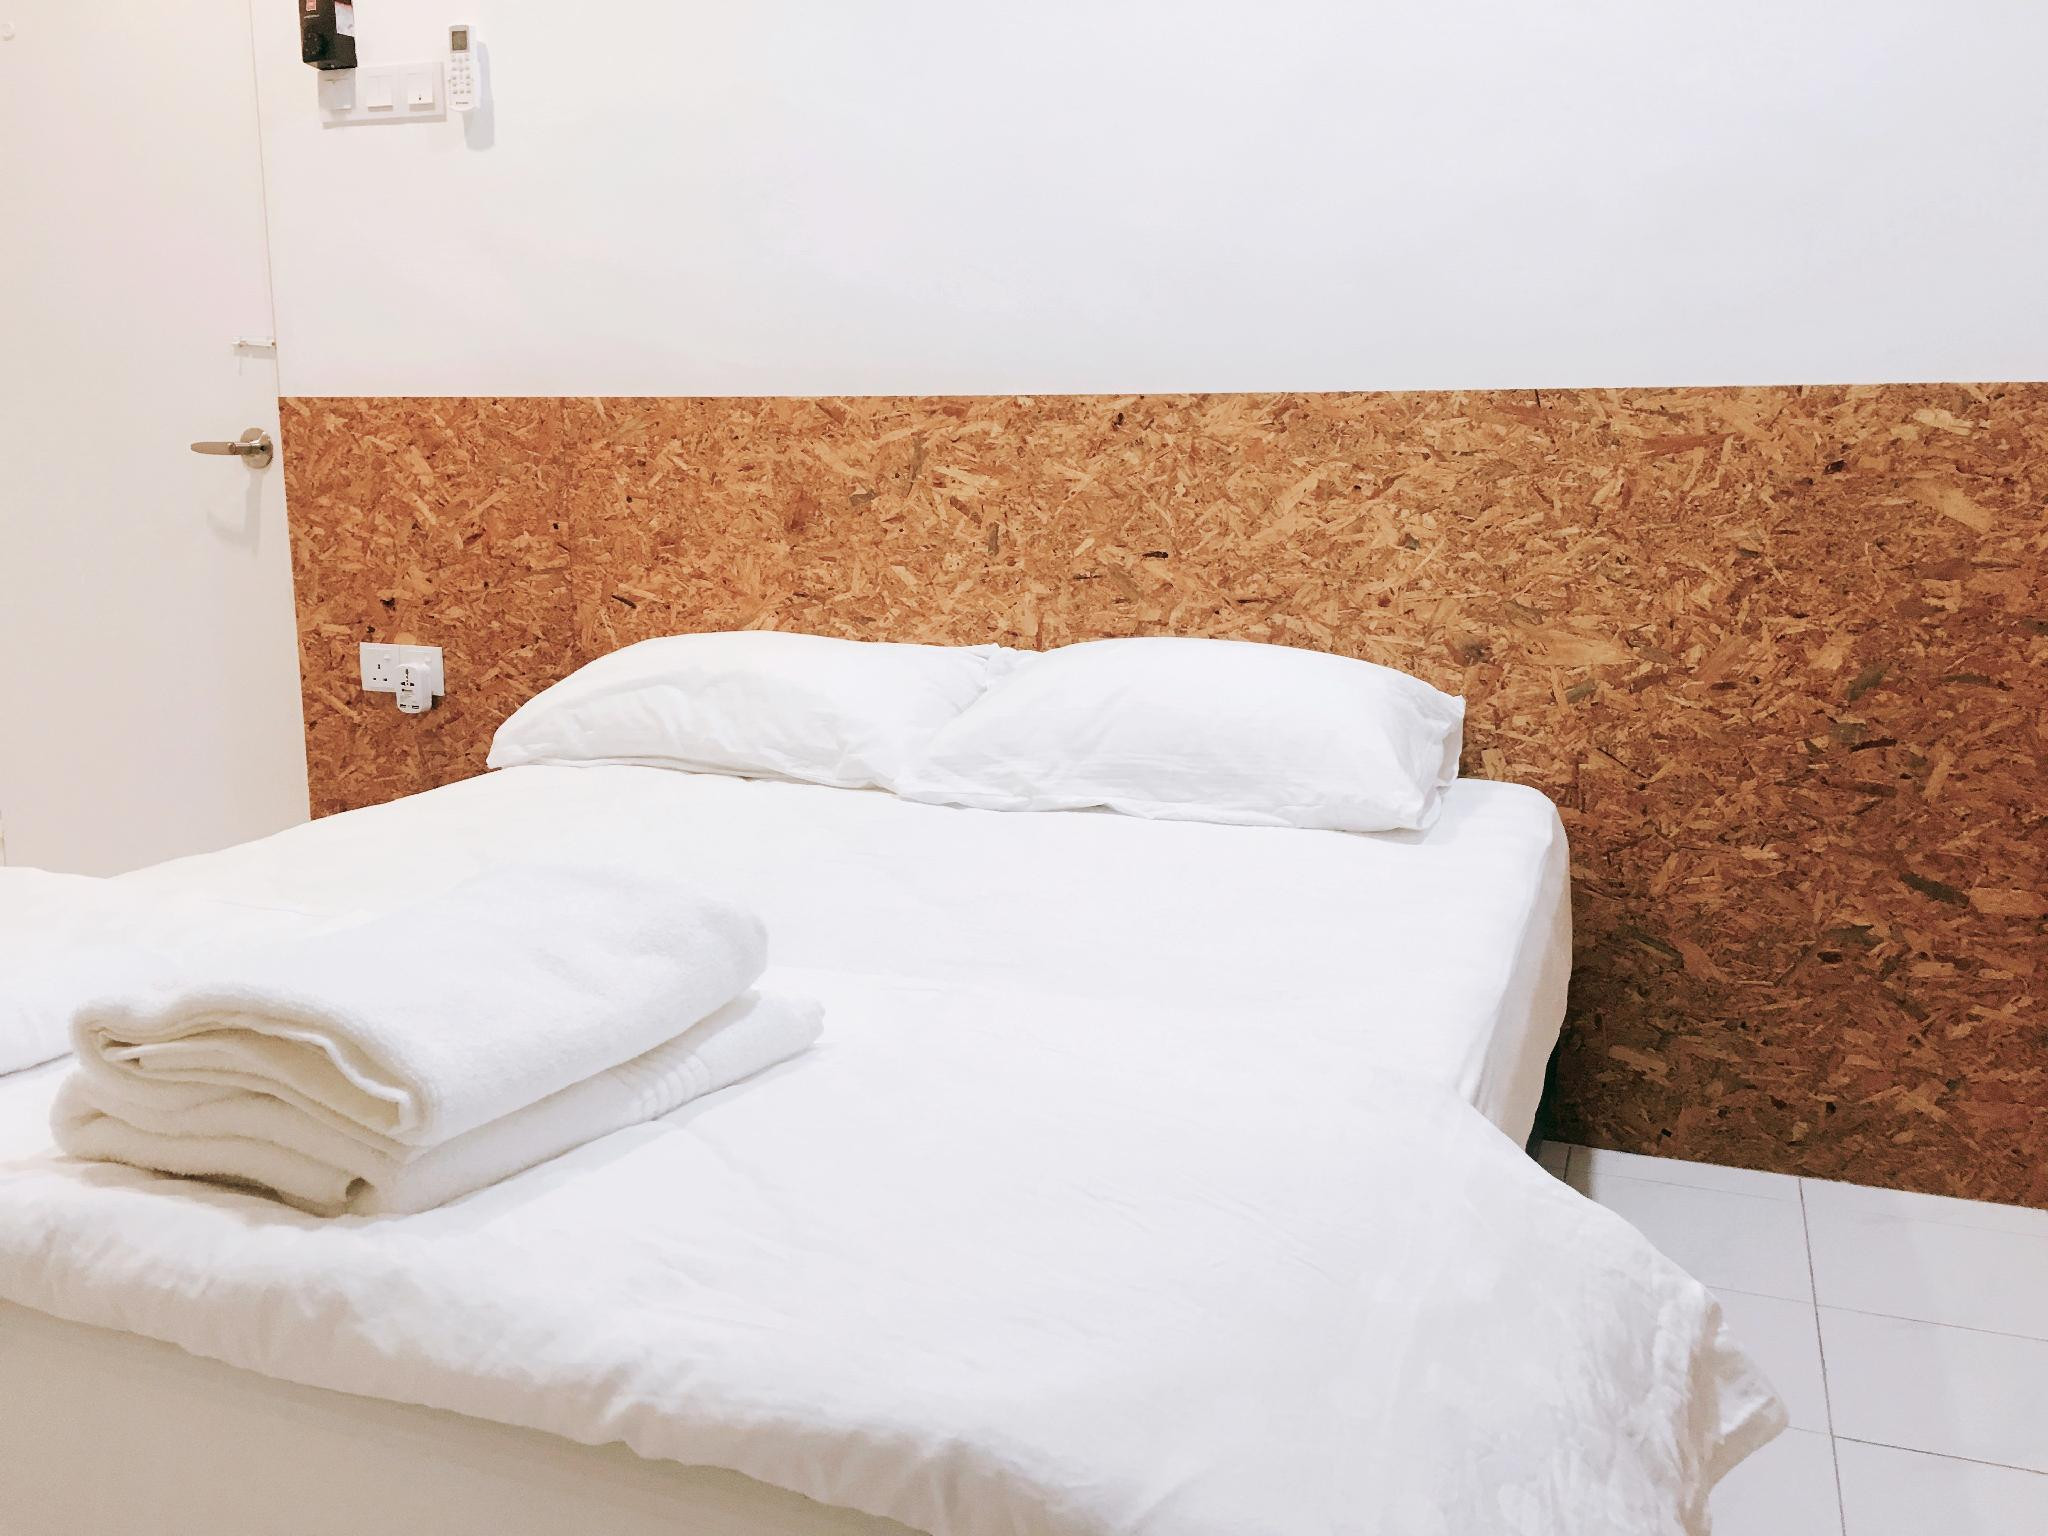 22 Haus  King Bed For 2 With Private Bathroom